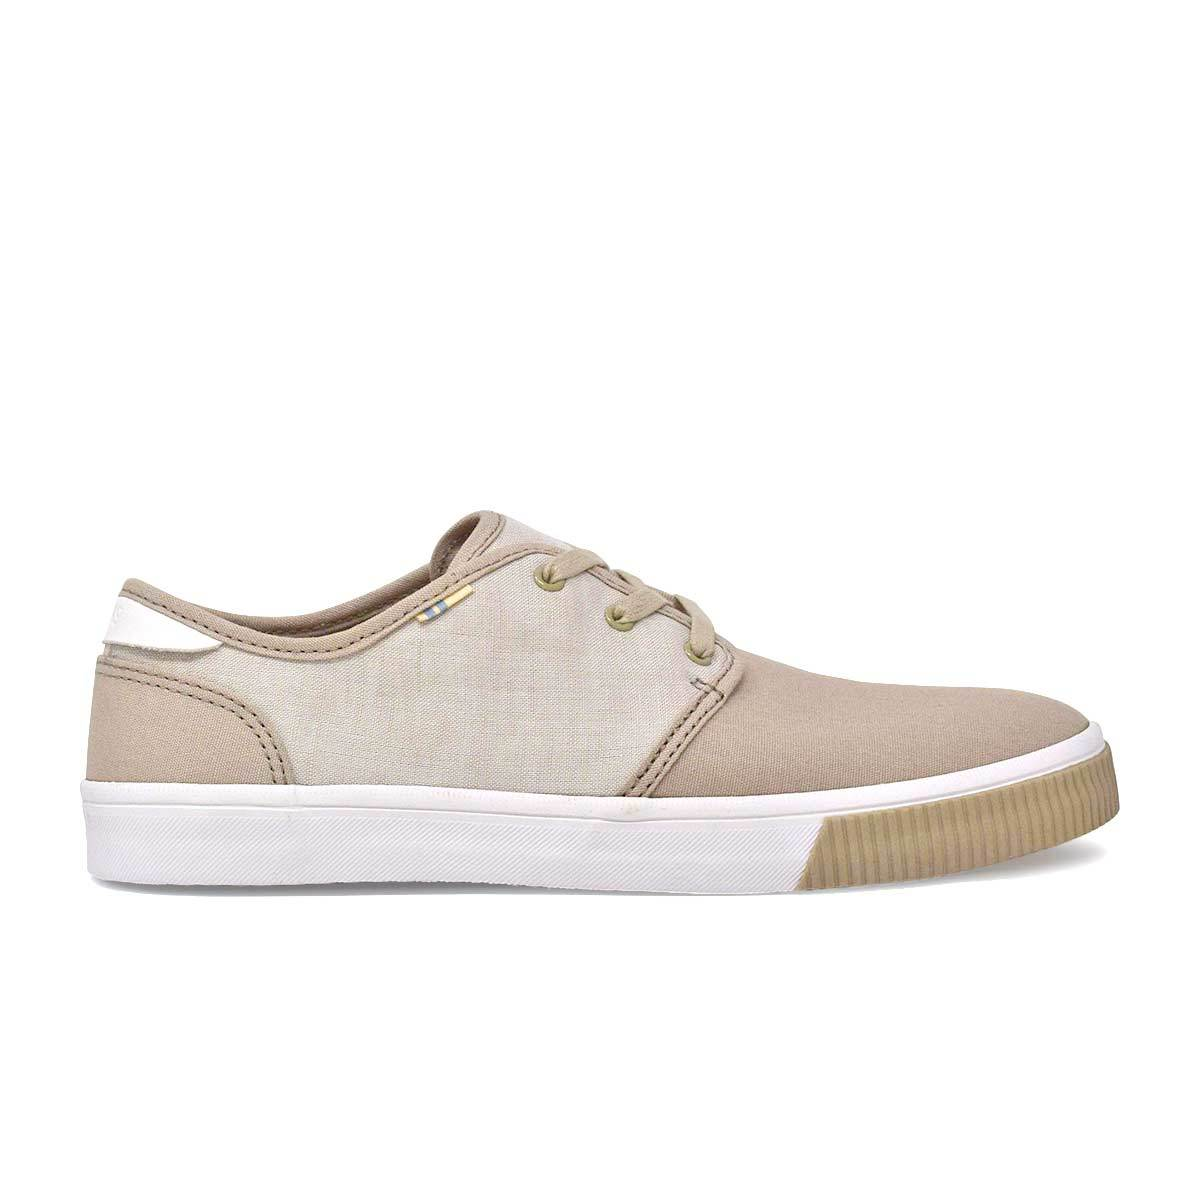 Two Tone Natural Canvas Men's Carlo Sneakers Topanga Collection